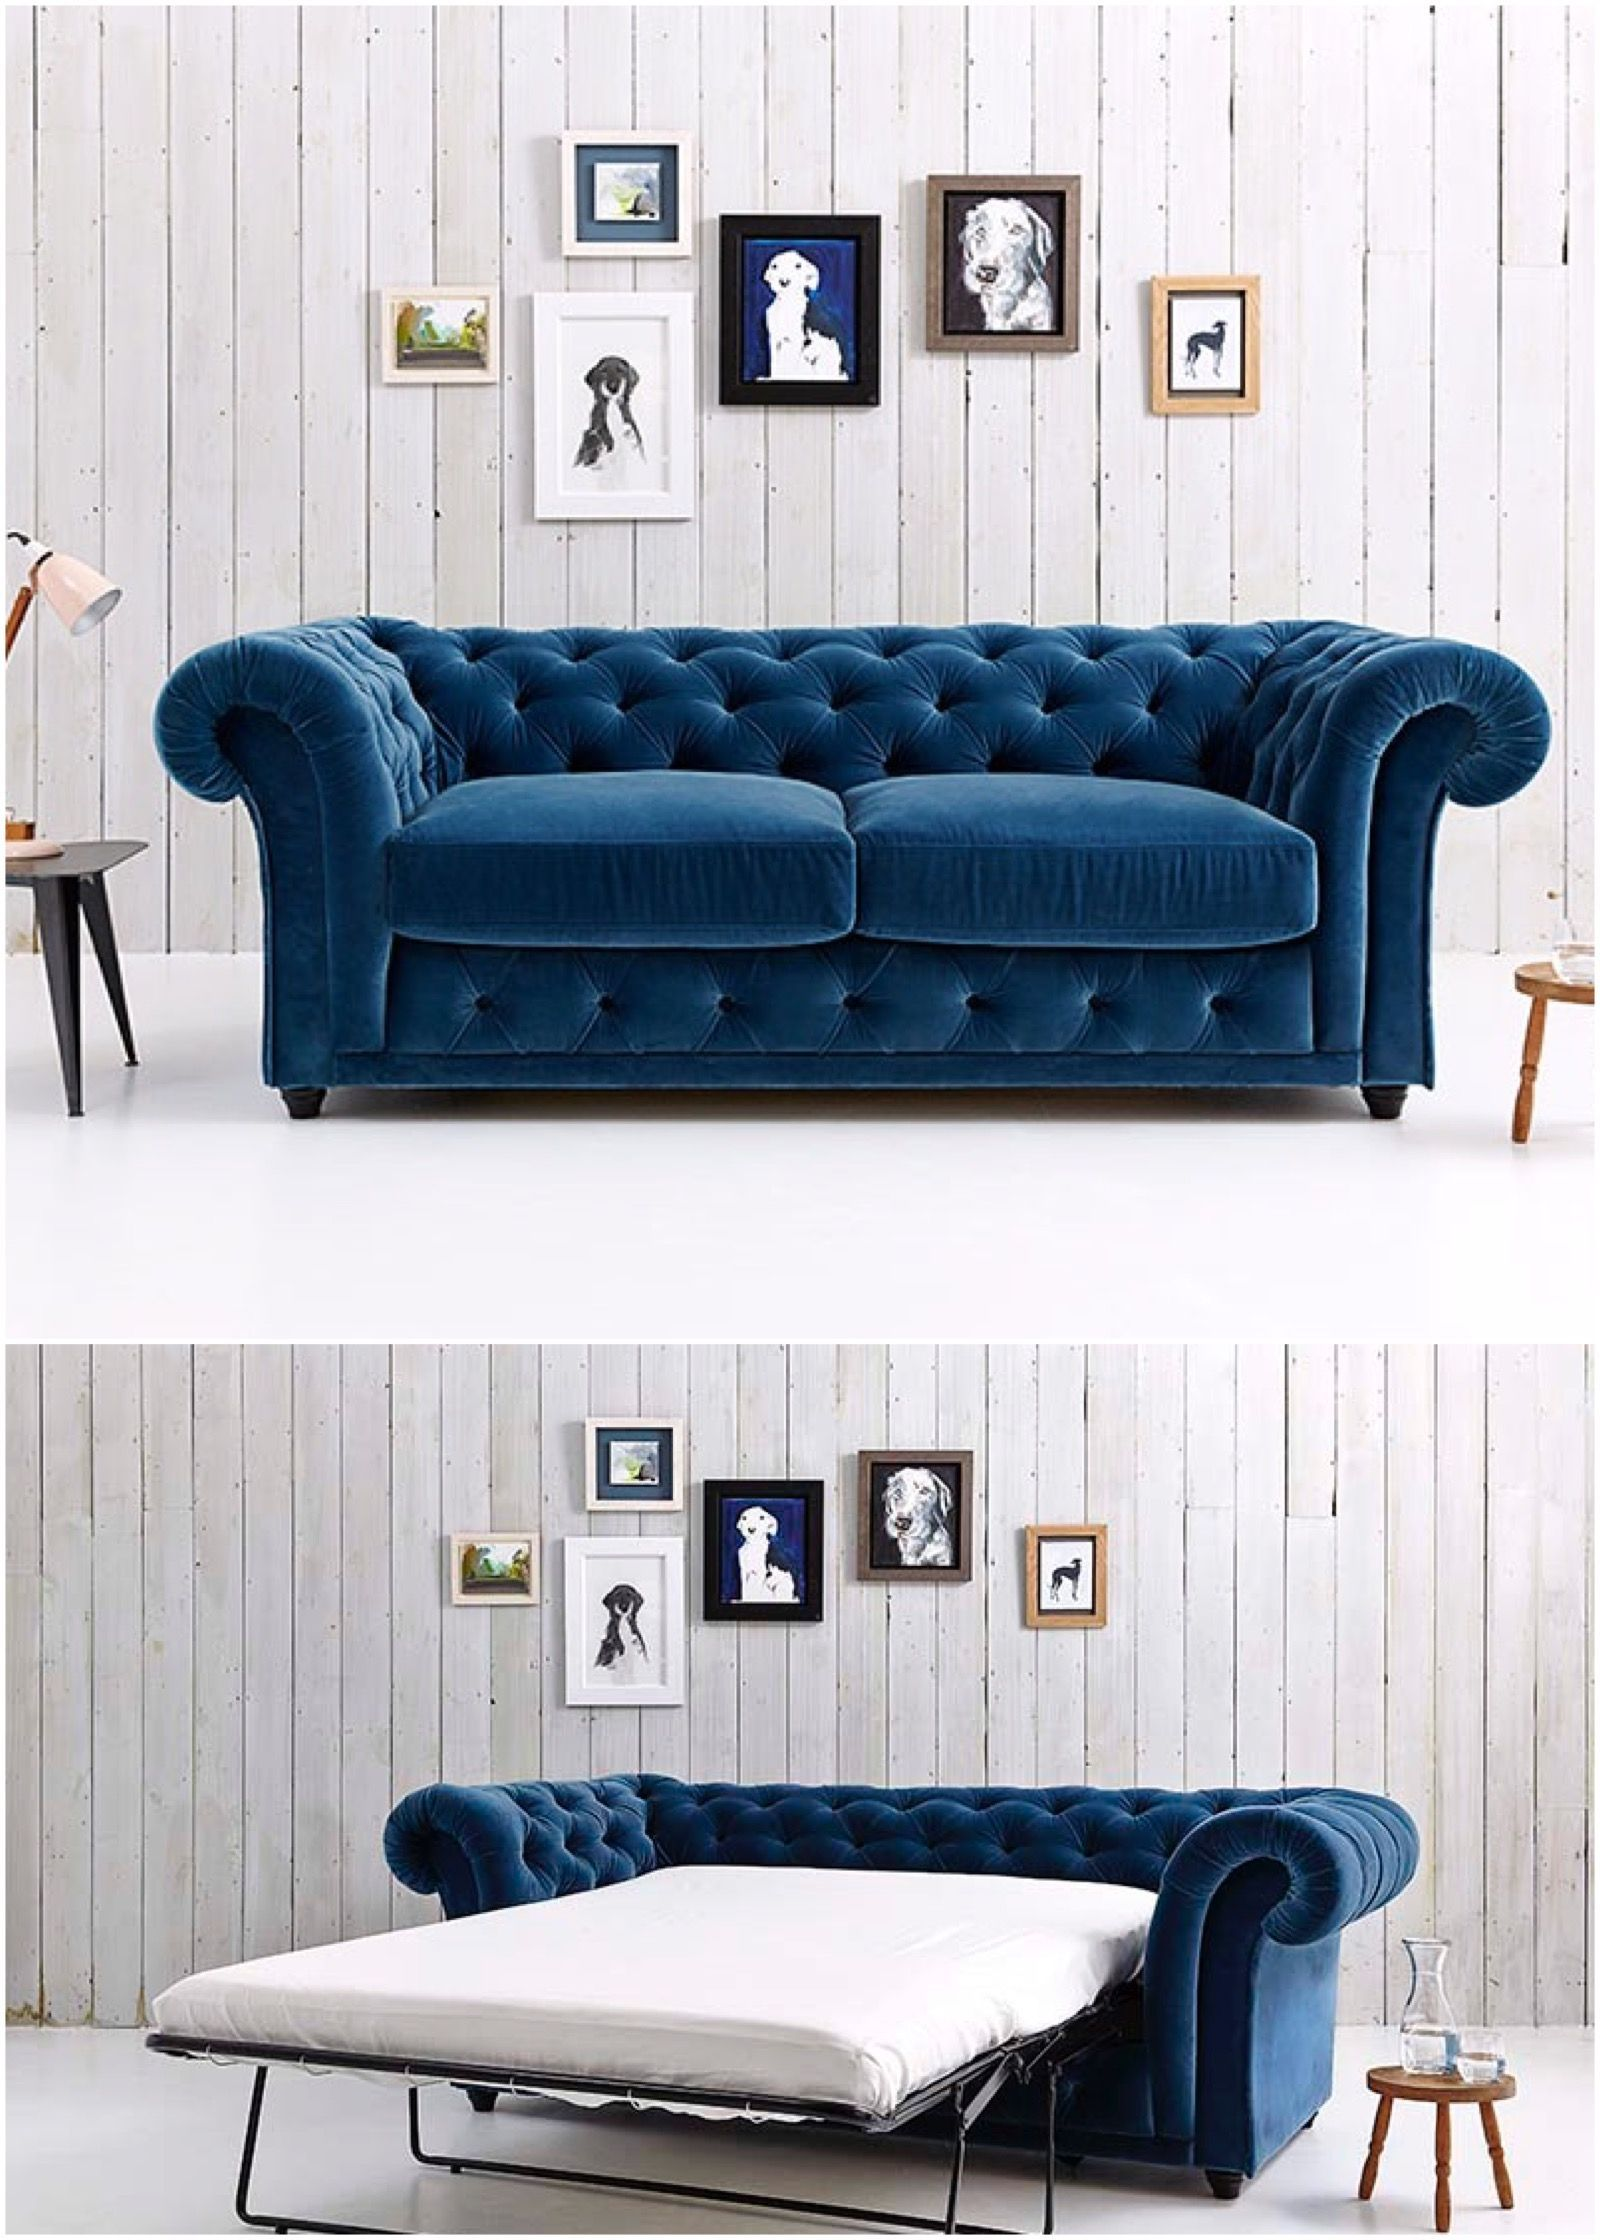 churchill chesterfield sofa bed double beds chesterfield and